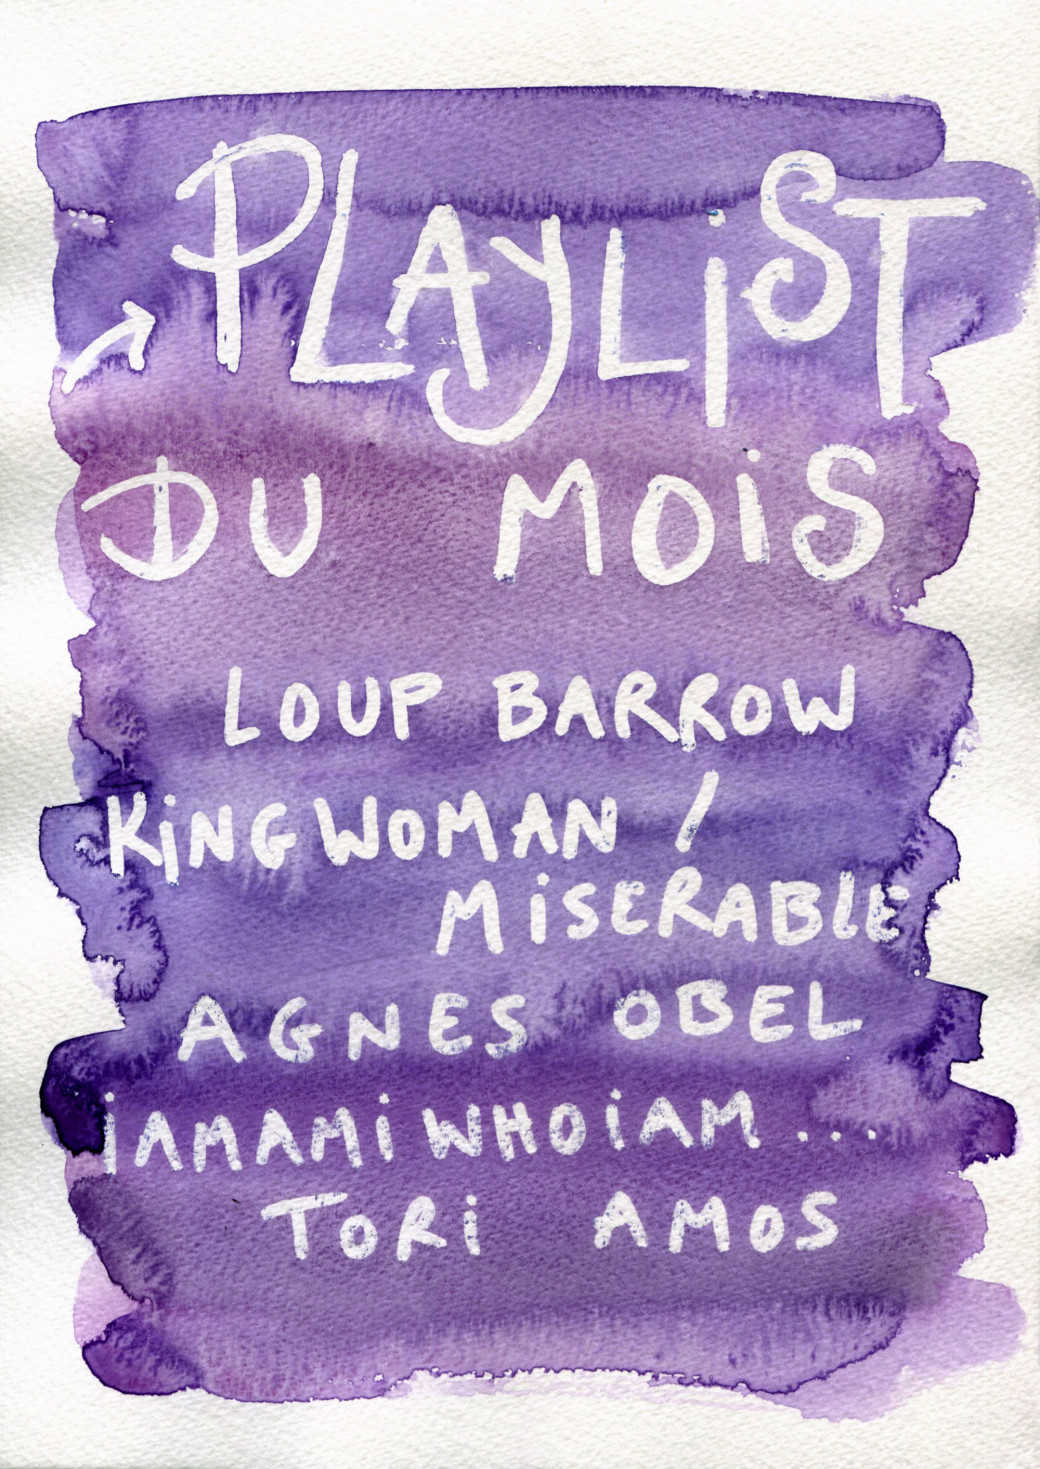 Playlist du mois